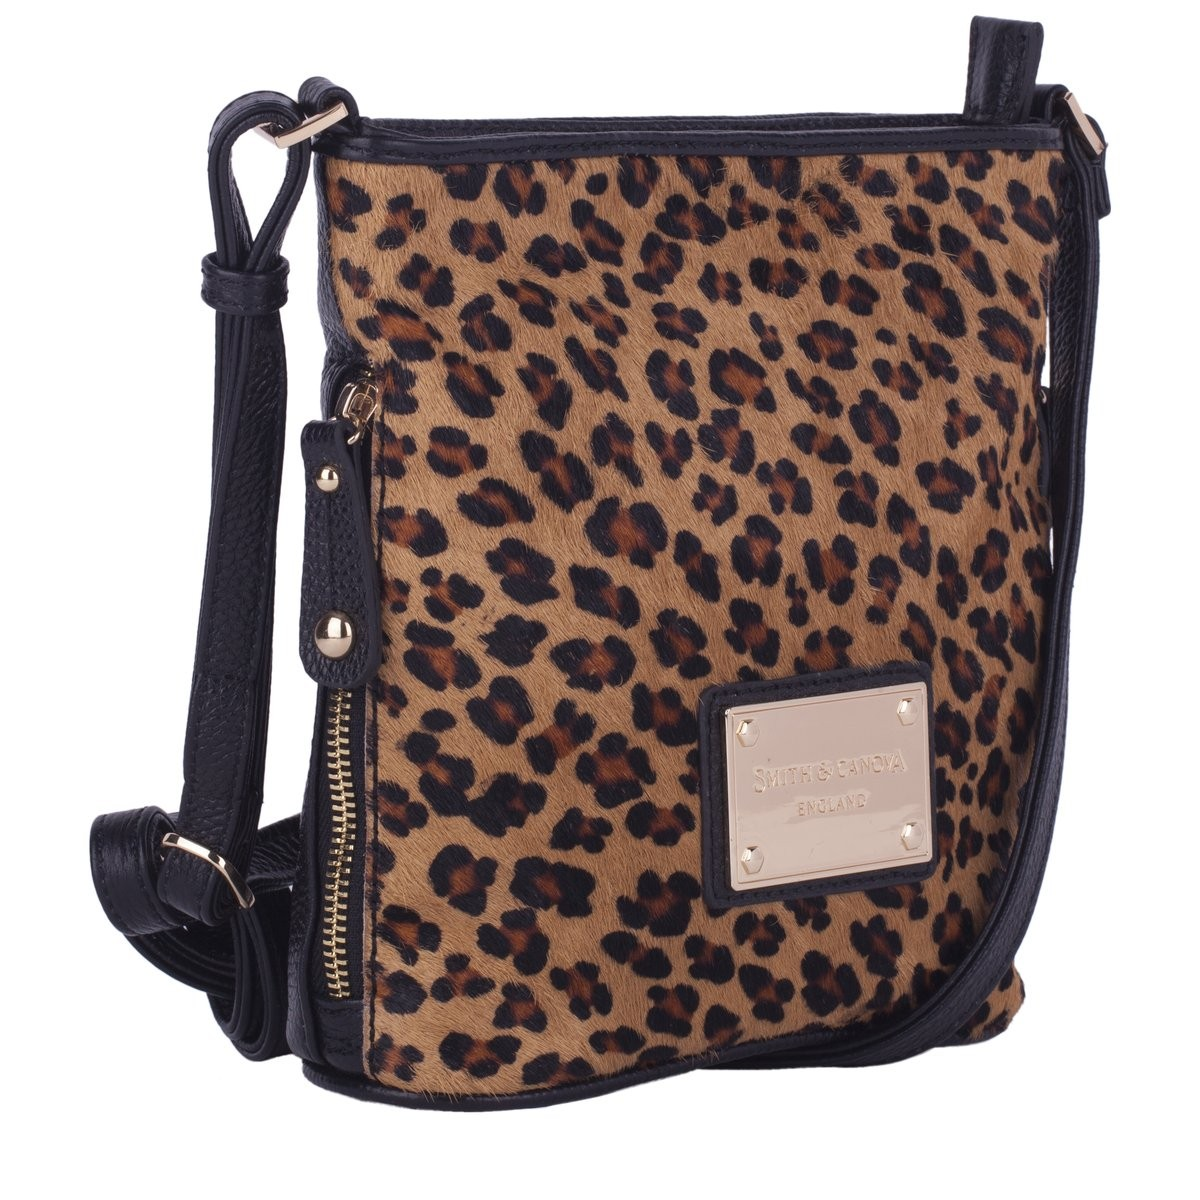 960656e87d67 They're made from real leather and are priced very well - especially these  two in the sale. This first one is a bigger option in a darker leopard print  to ...